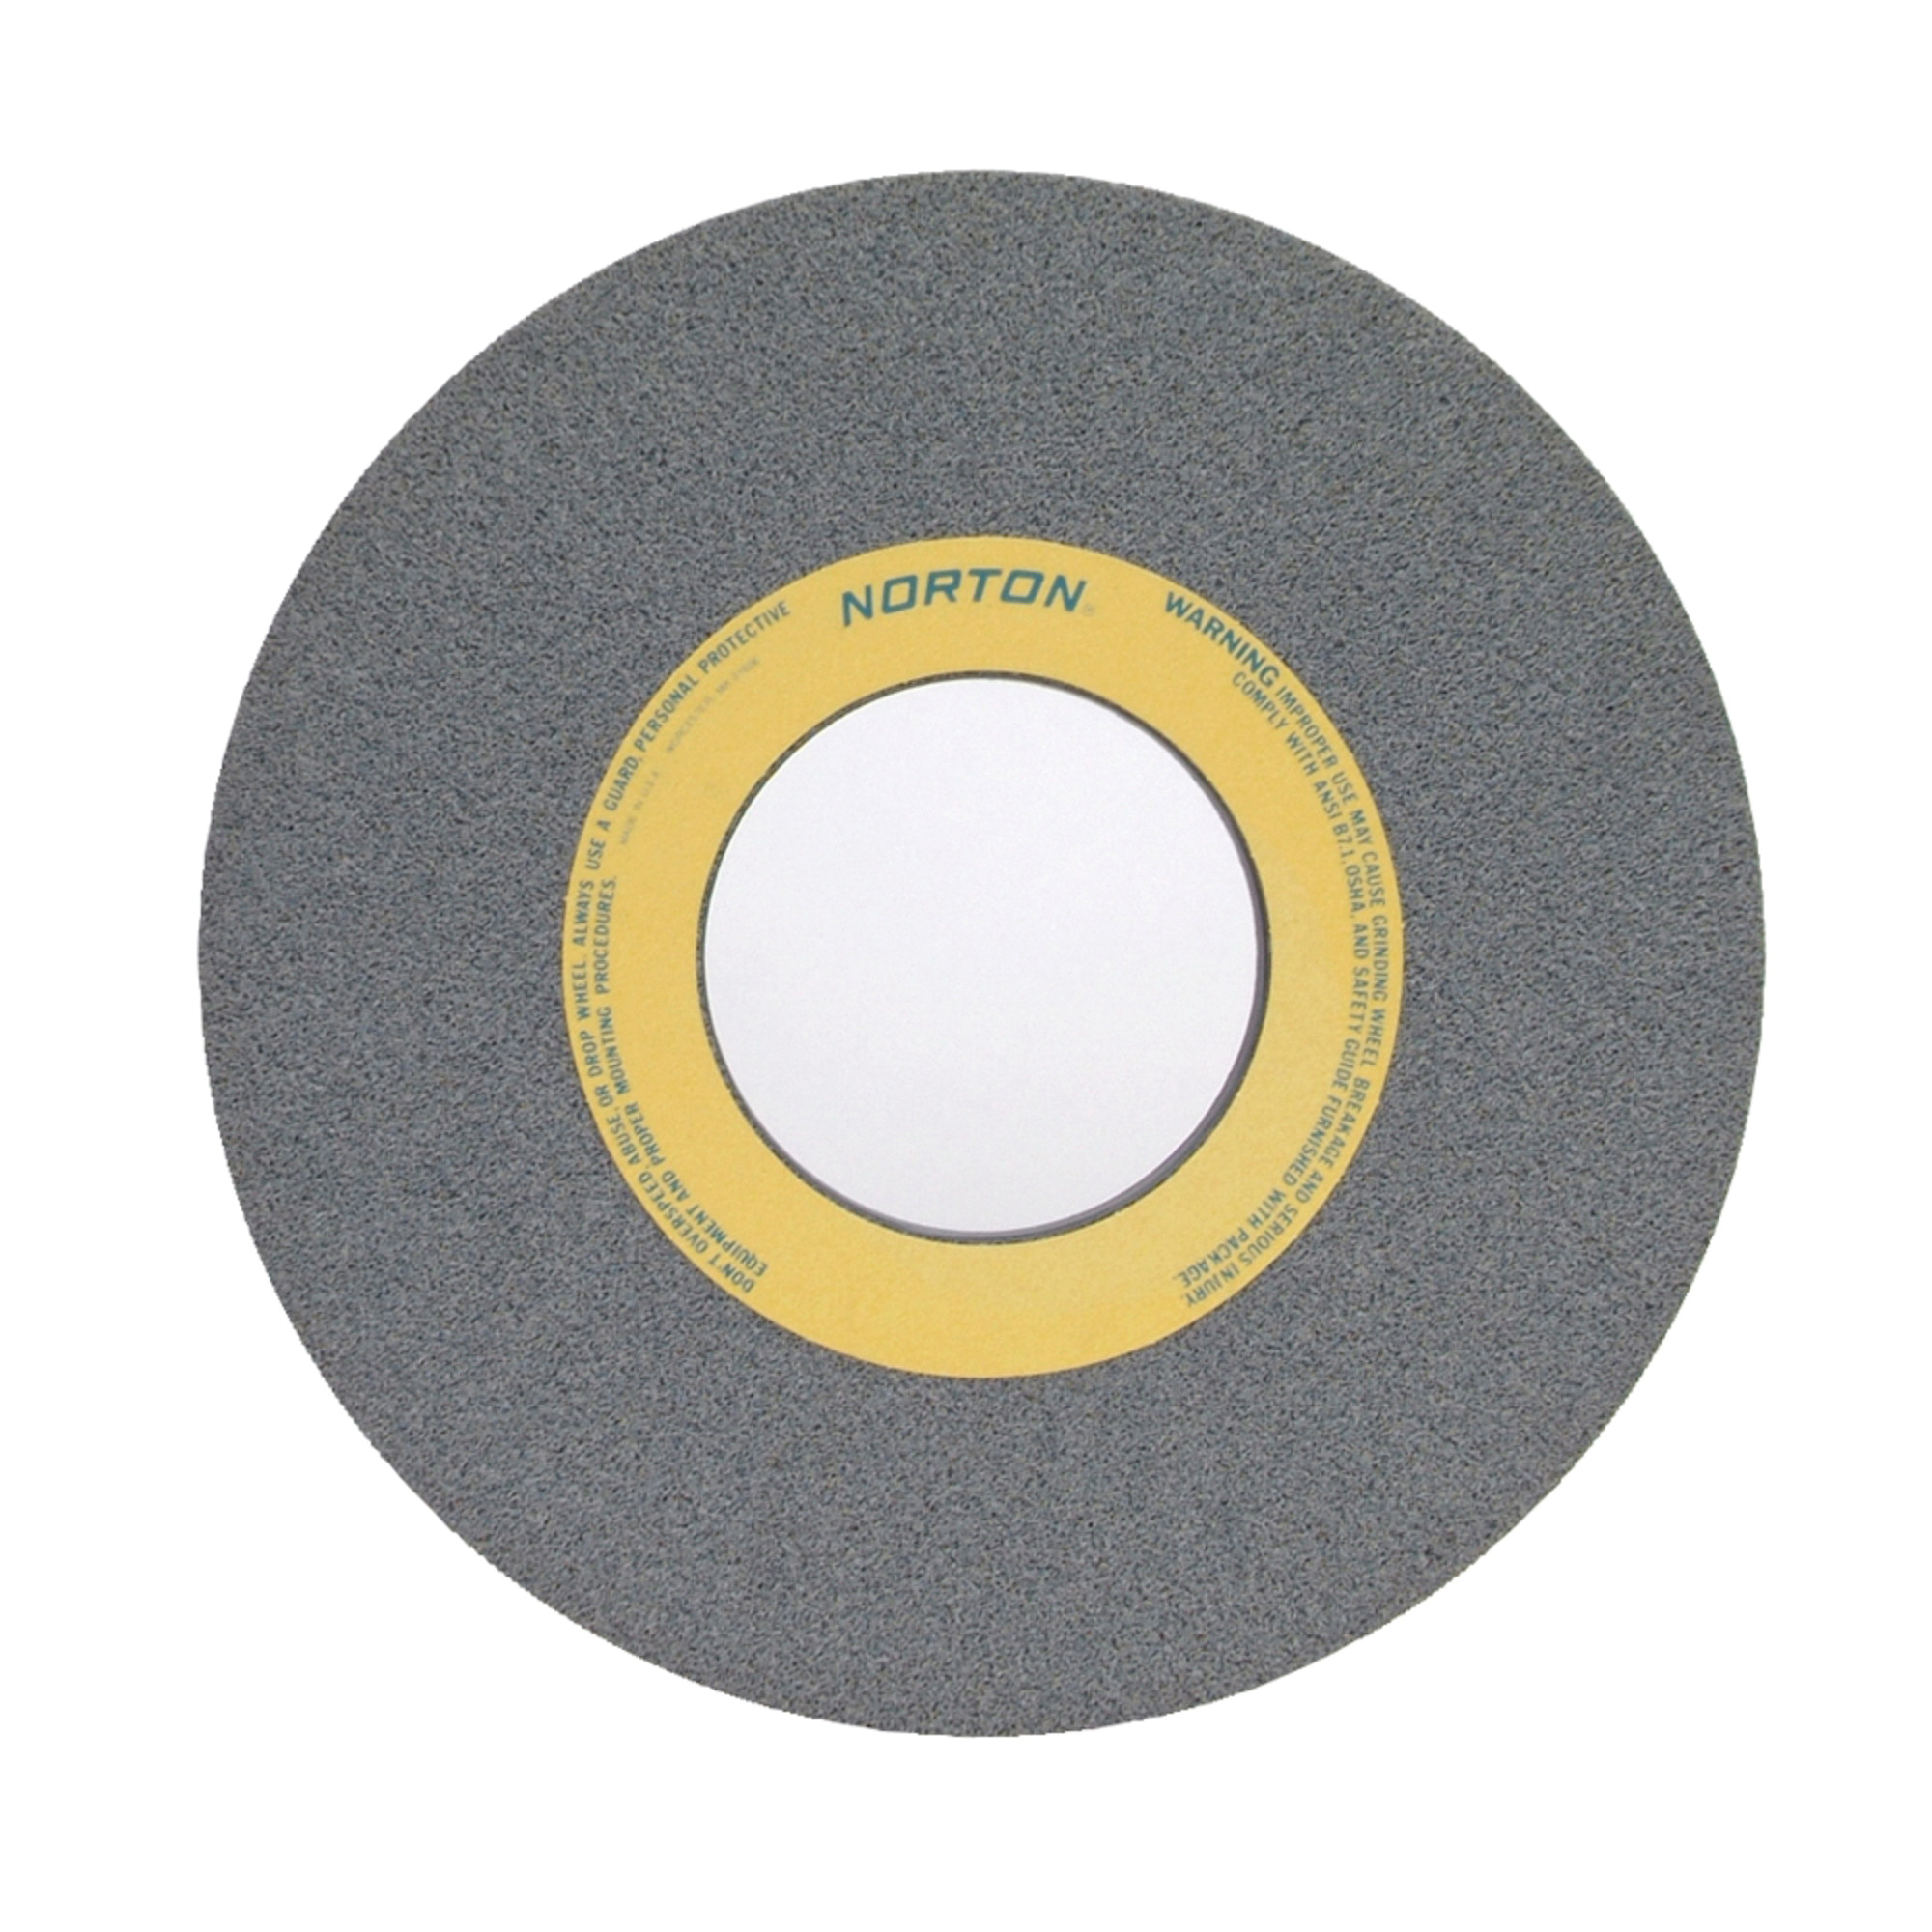 Norton® 66253364077 32A Straight Toolroom Wheel, 14 in Dia x 1 in THK, 5 in Center Hole, 60 Grit, Aluminum Oxide Abrasive